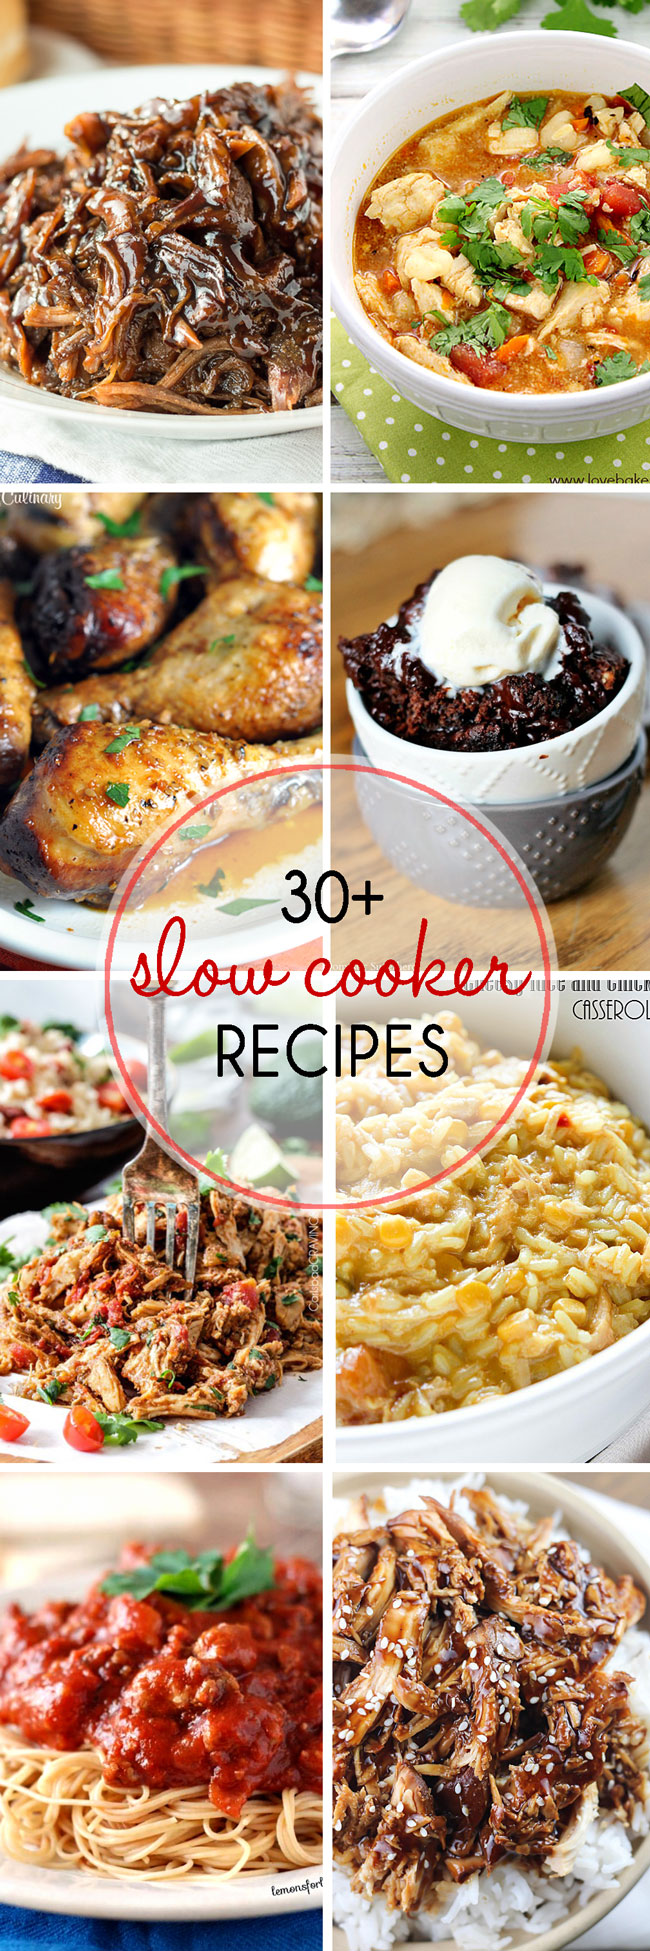 thirty slow cooker recipe you will want to try from the top food bloggers